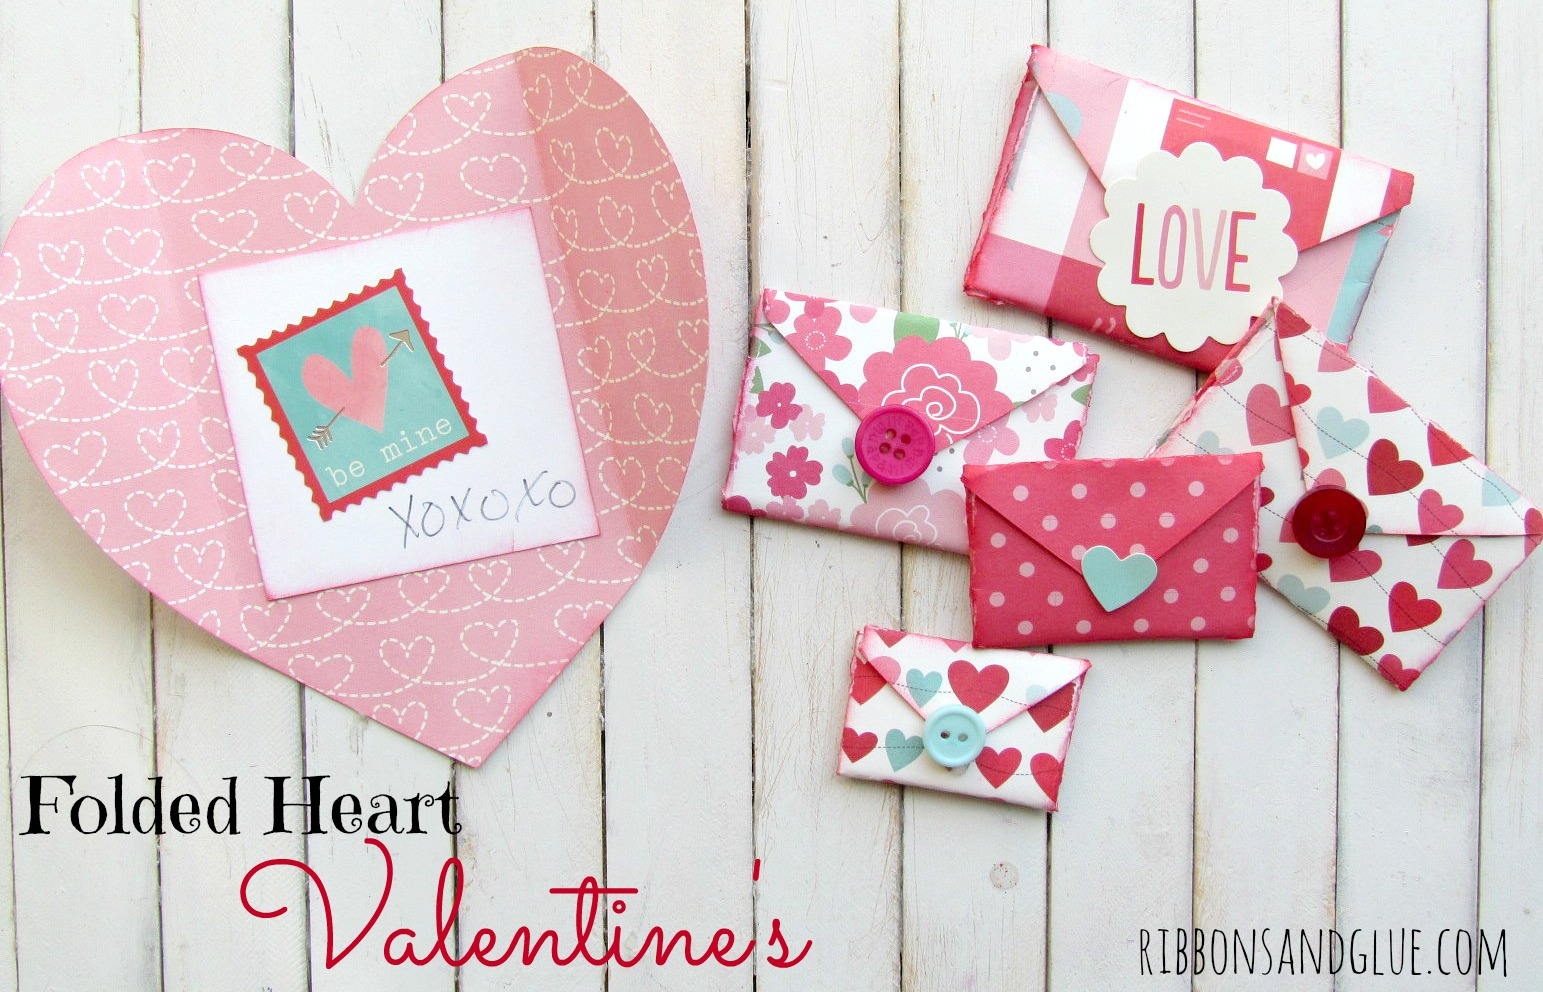 Quick and easy valentine crafts - Quick And Easy Crafts Valentine S Craft Lightning Day 1 And 2 Round Up The Country Chic Cottage